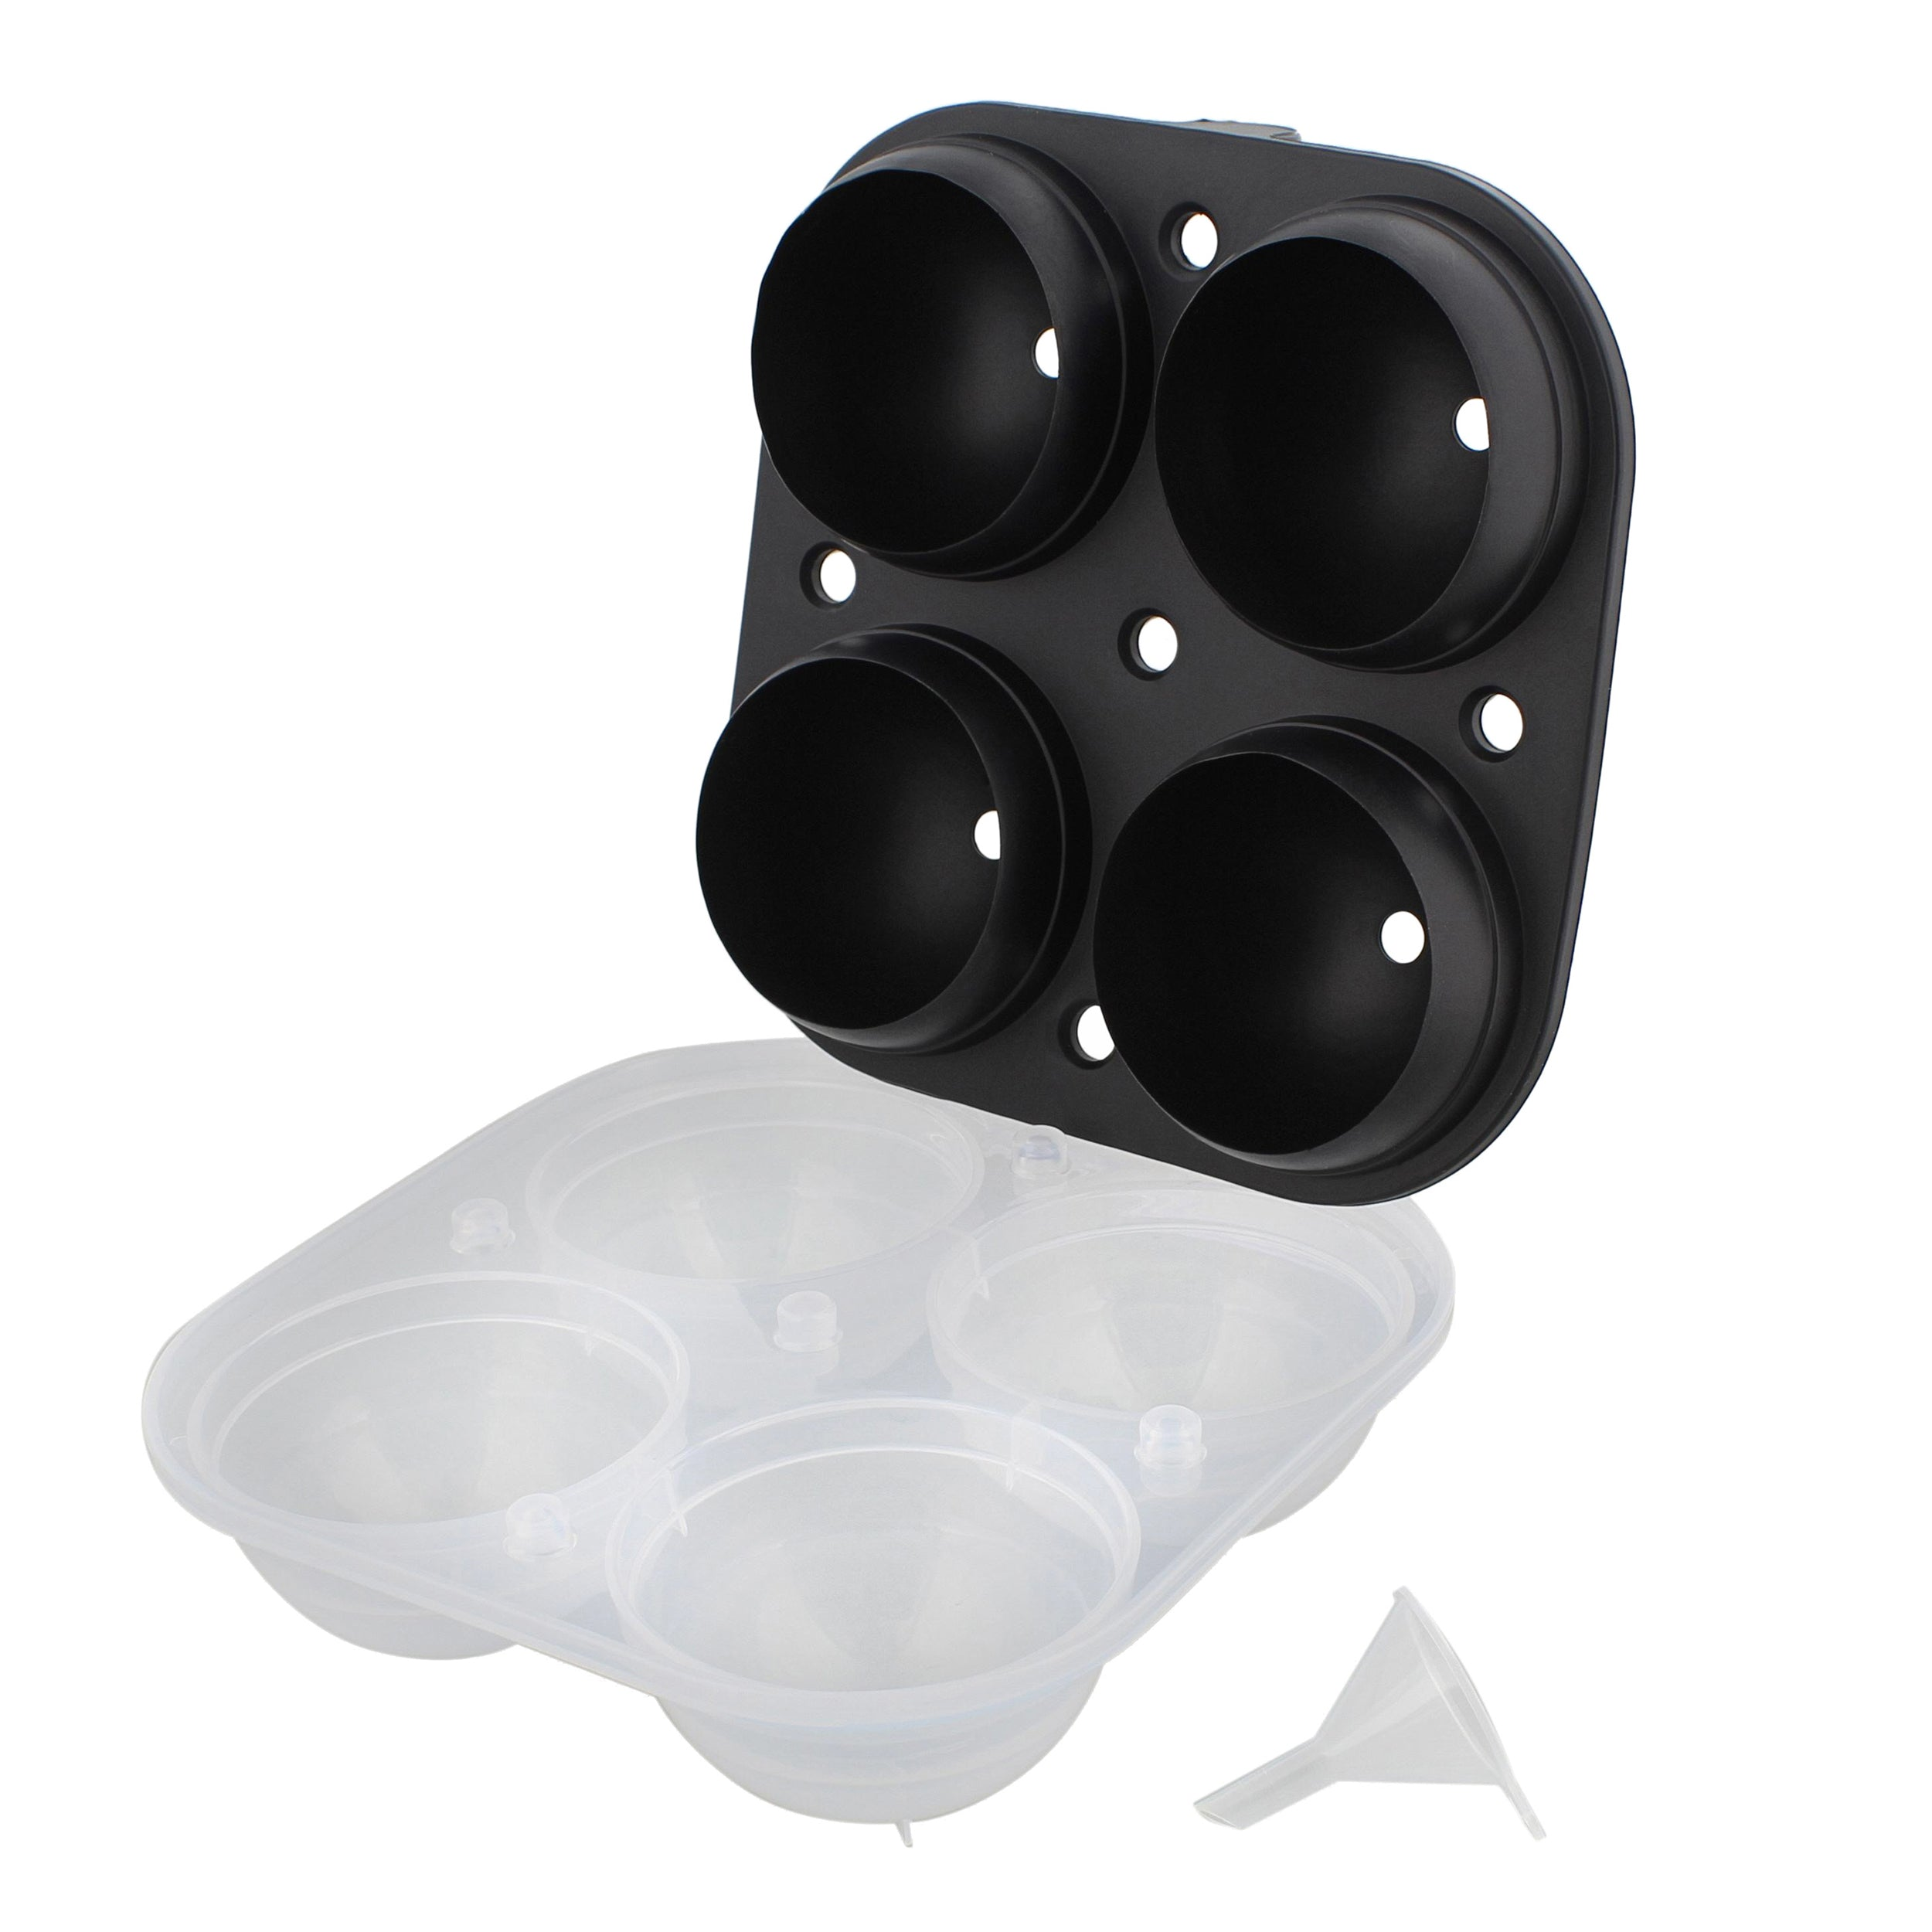 Round Ice Molds 4 Ice Ball Black 1pk Sphere Flexible Silicone Ice Tray